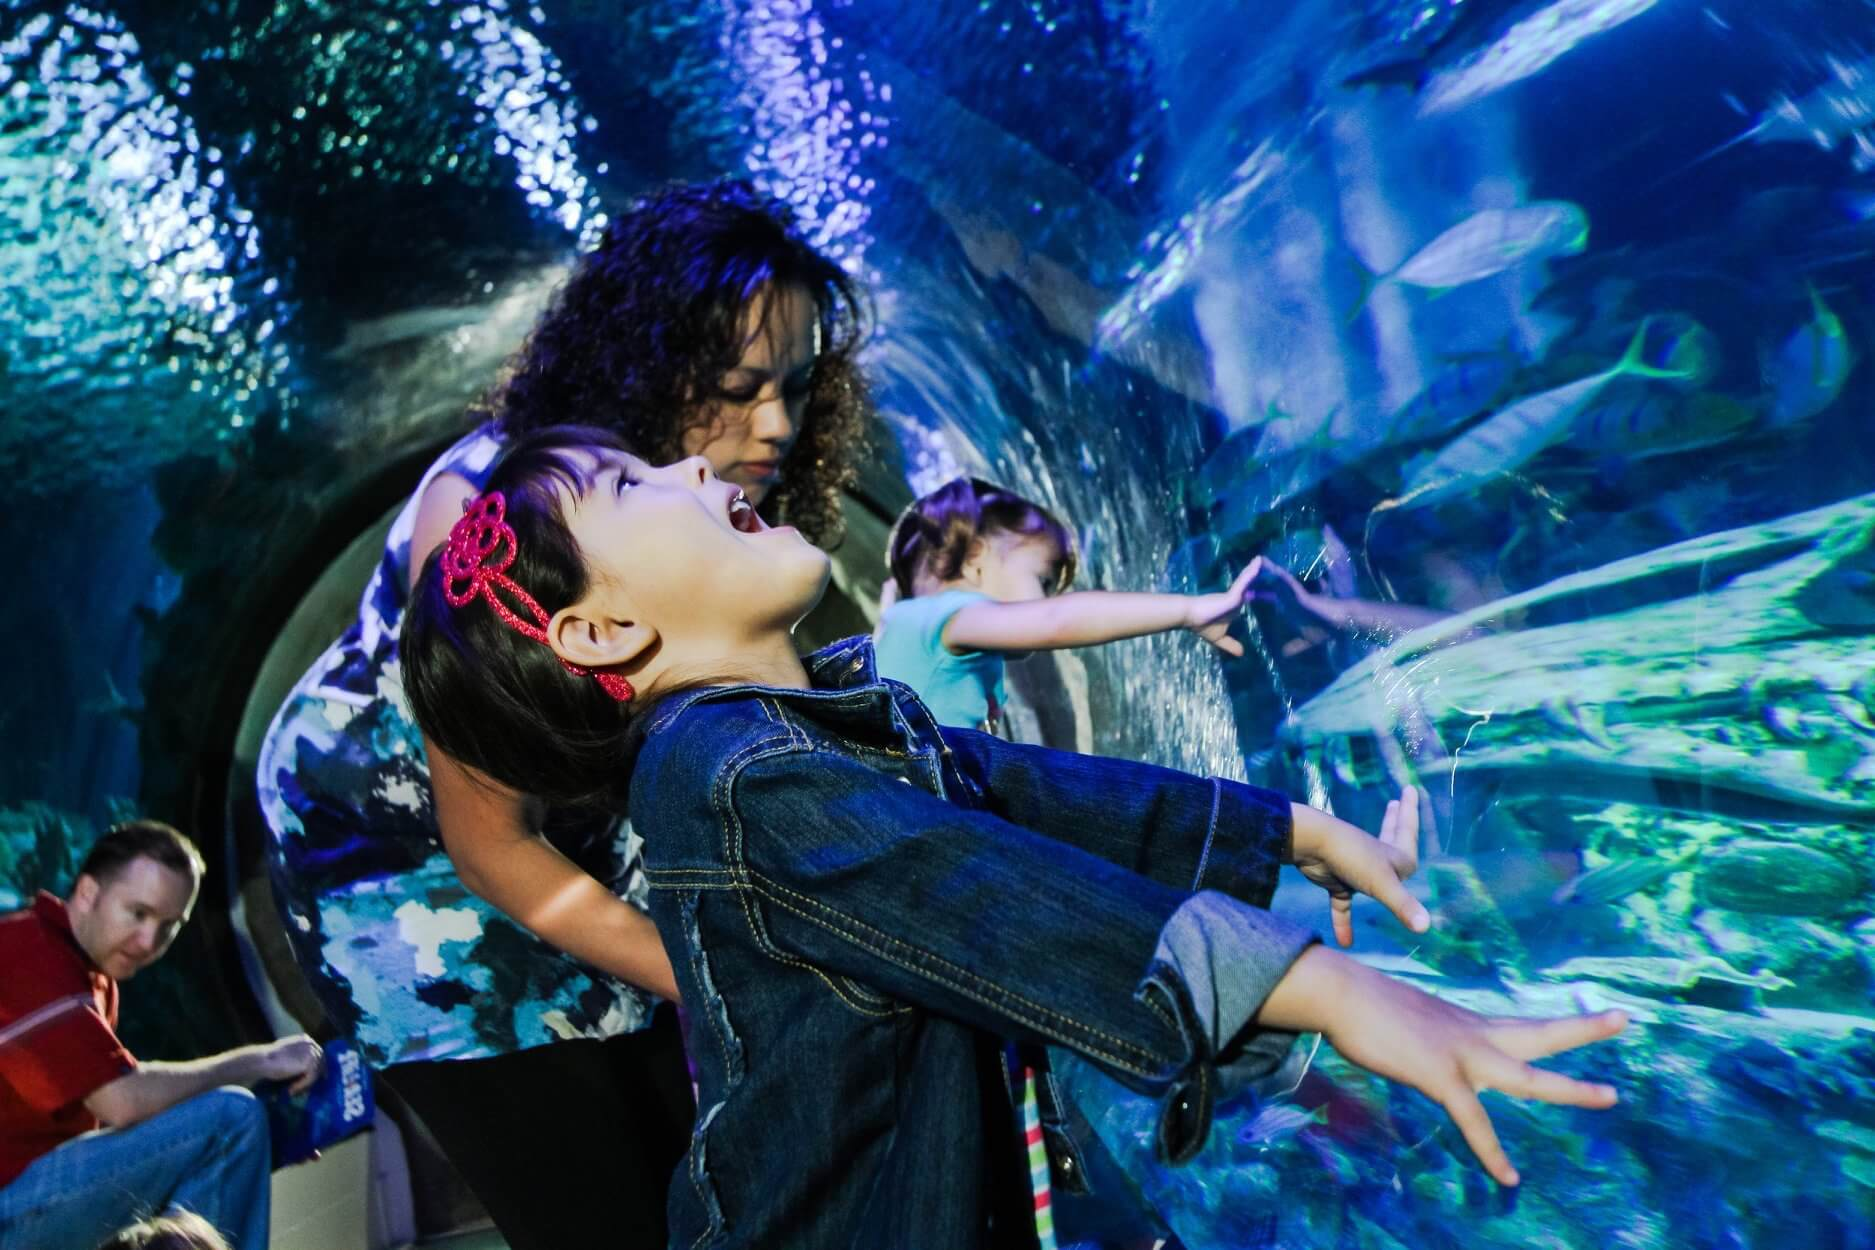 SEA LIFE Offers FREE Admission To Essential Workers